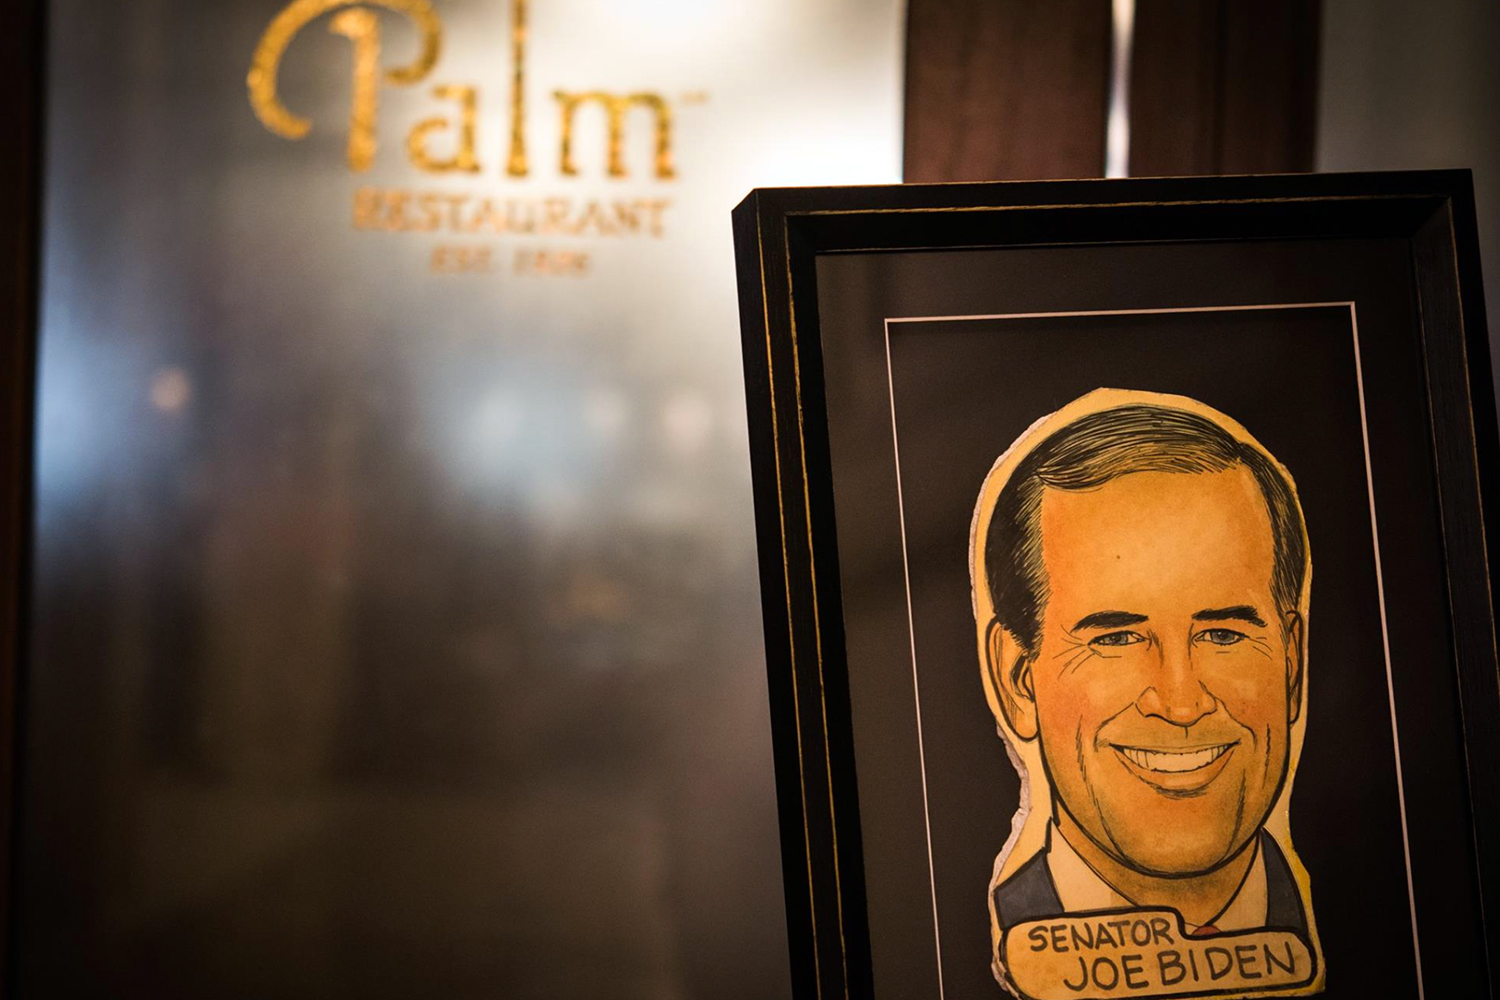 Biden's honorary caricature at The Palm.